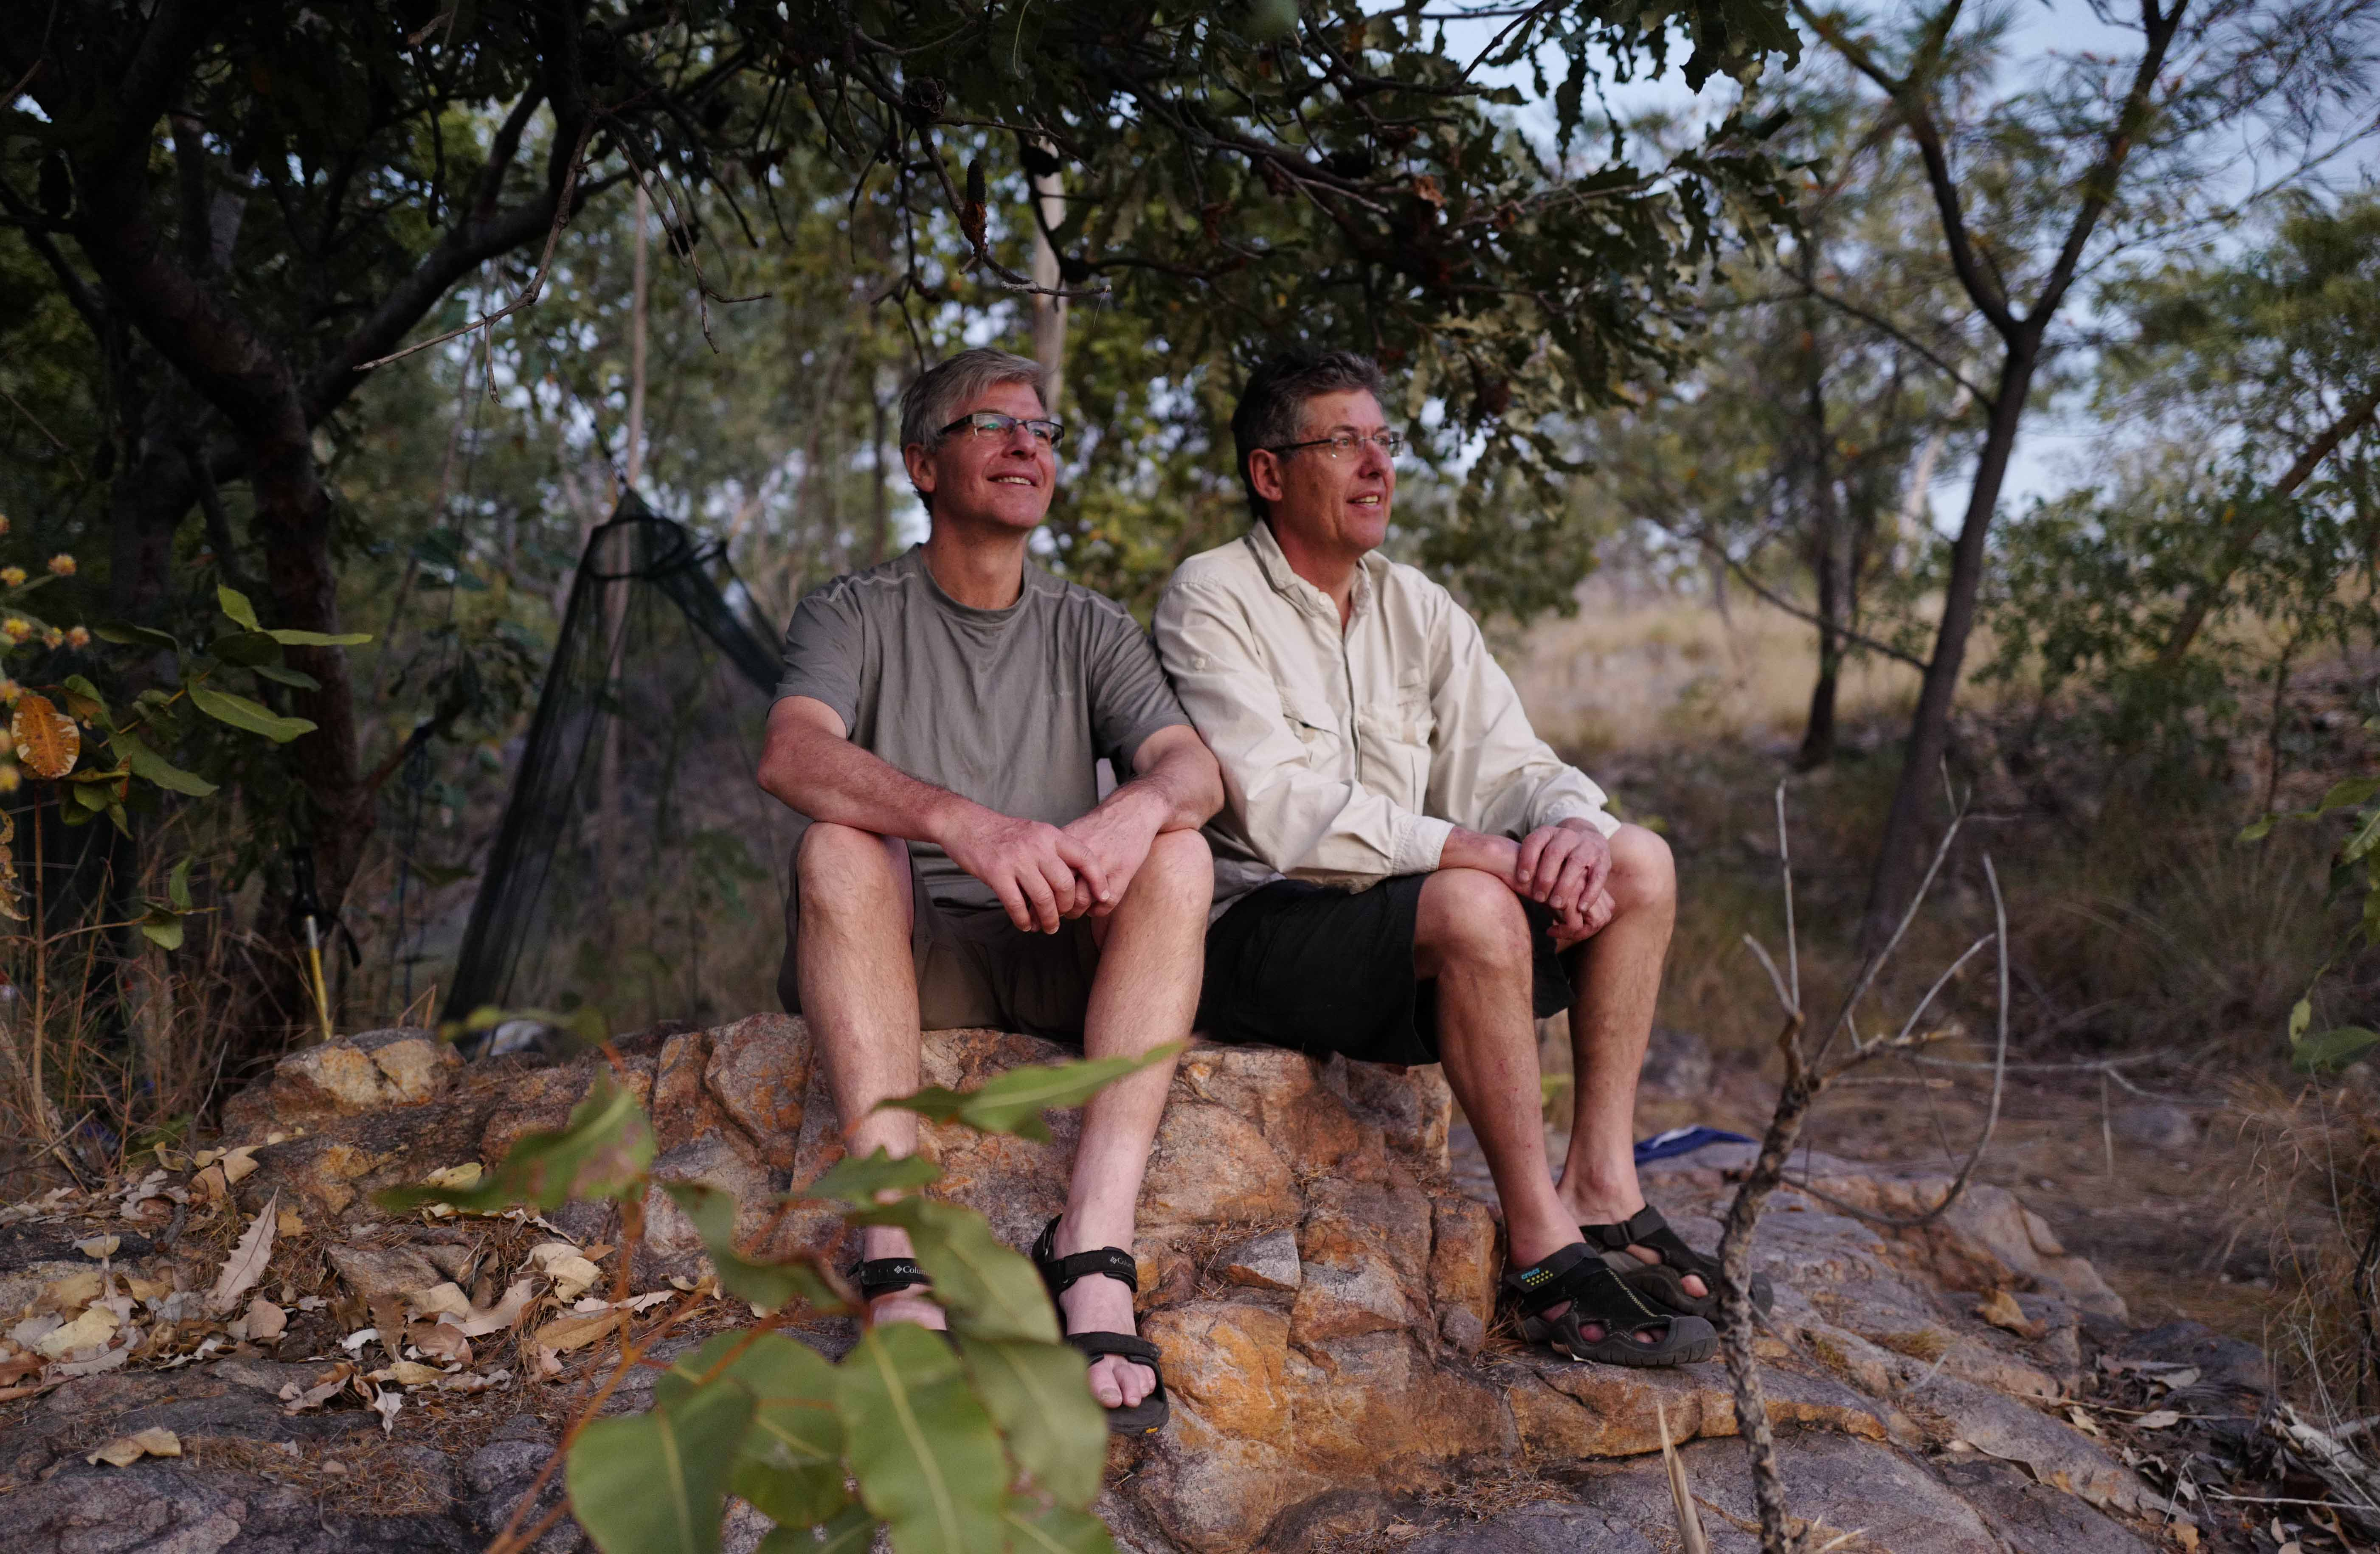 (L-R) Brothers Robbie & Barrie Feyder, experienced bushwalkers and great company on the track share a quiet moment